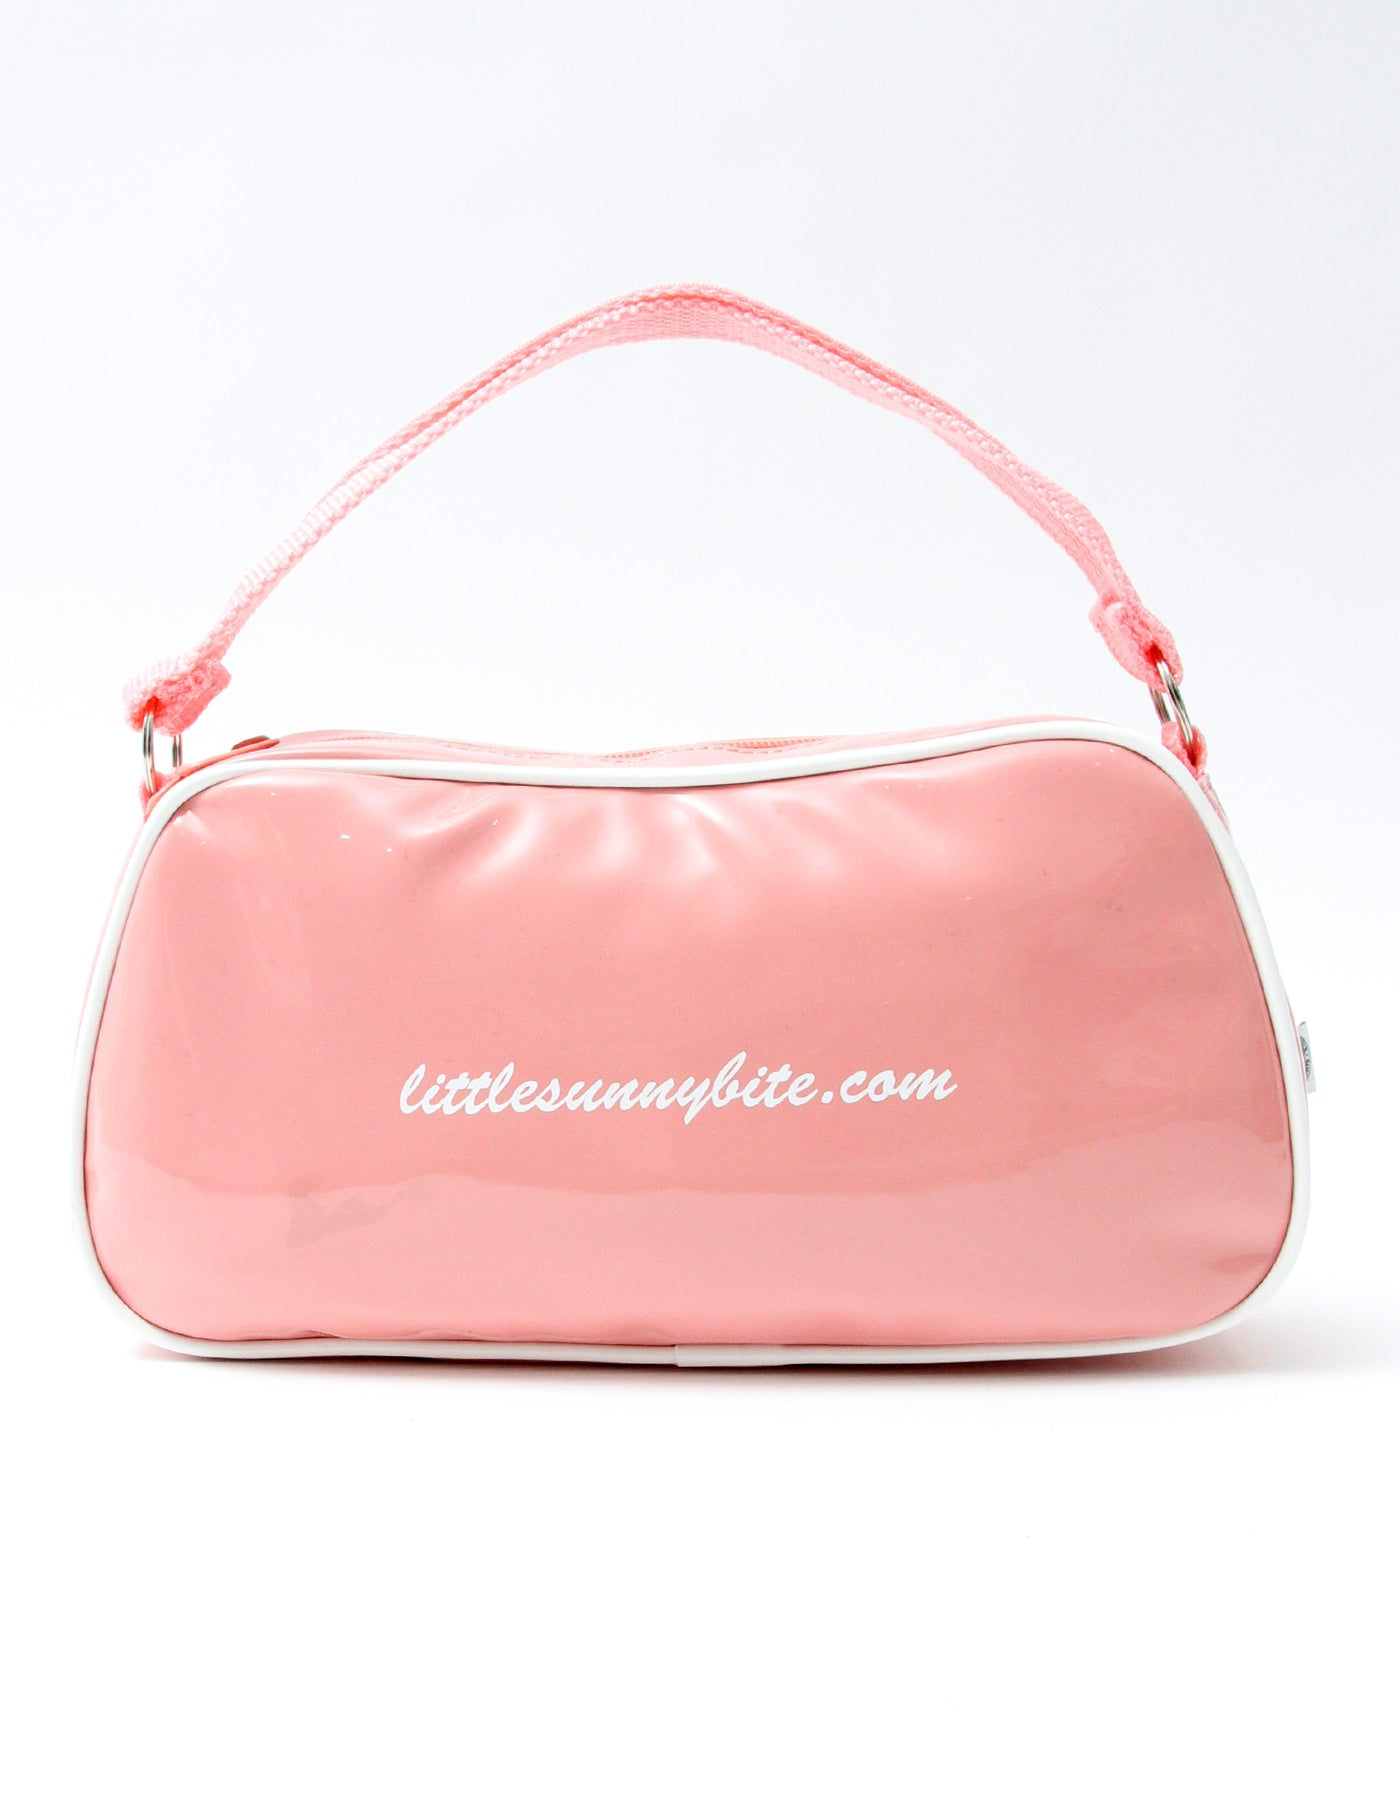 LSB Logo mini bag / PINK